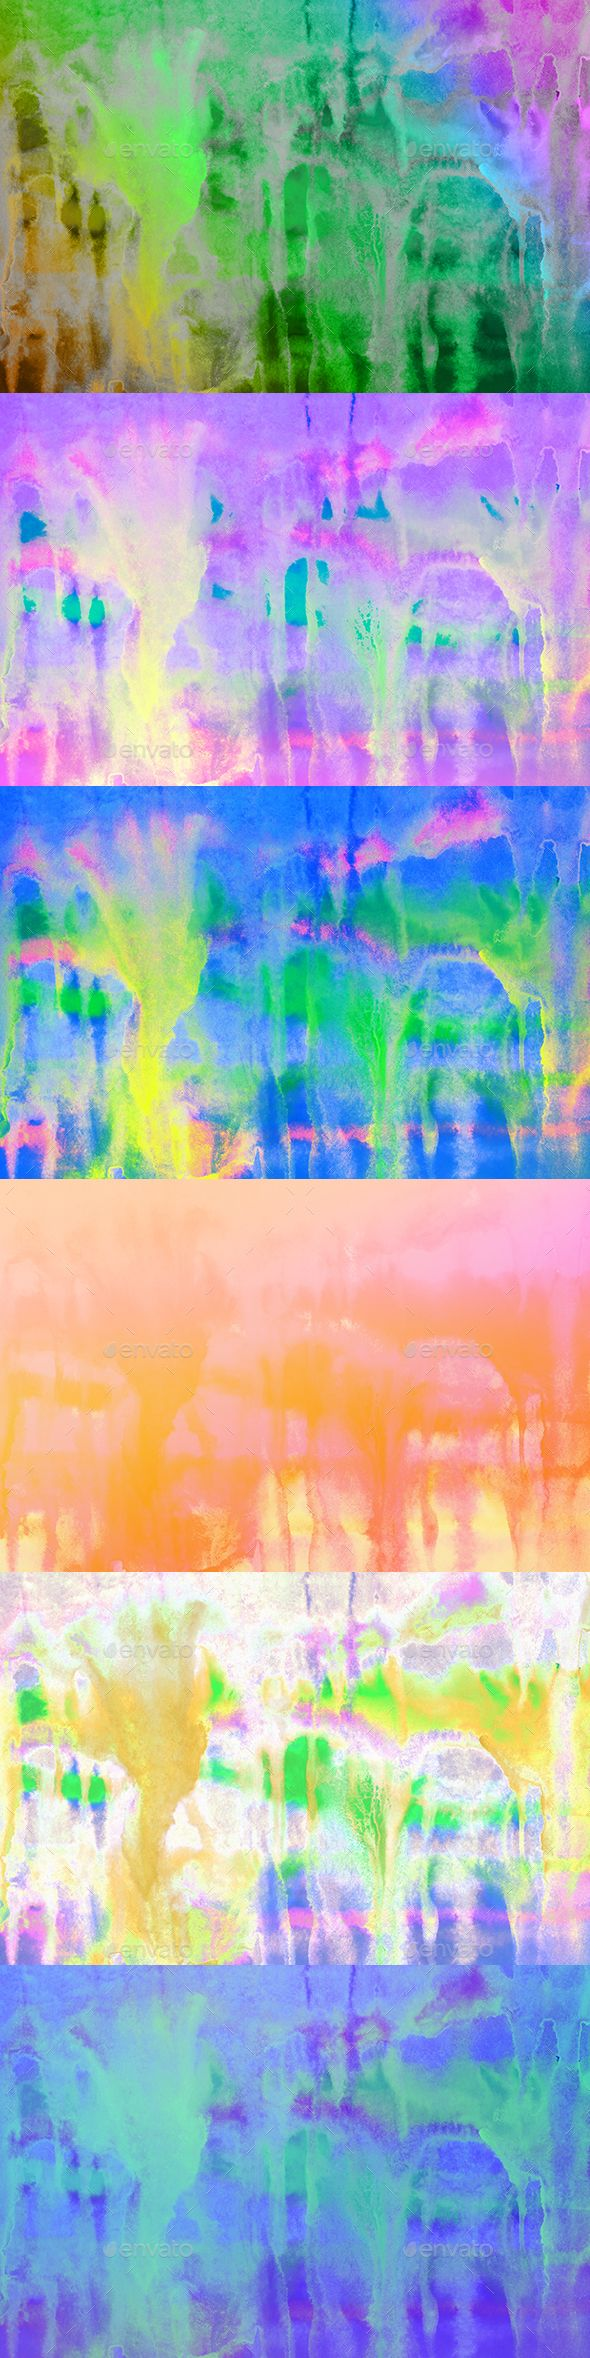 6 Abstract Backgrounds by Summerwind 6 jpg backgrounds, 3000脳2000 px, 72 dpi, RGB